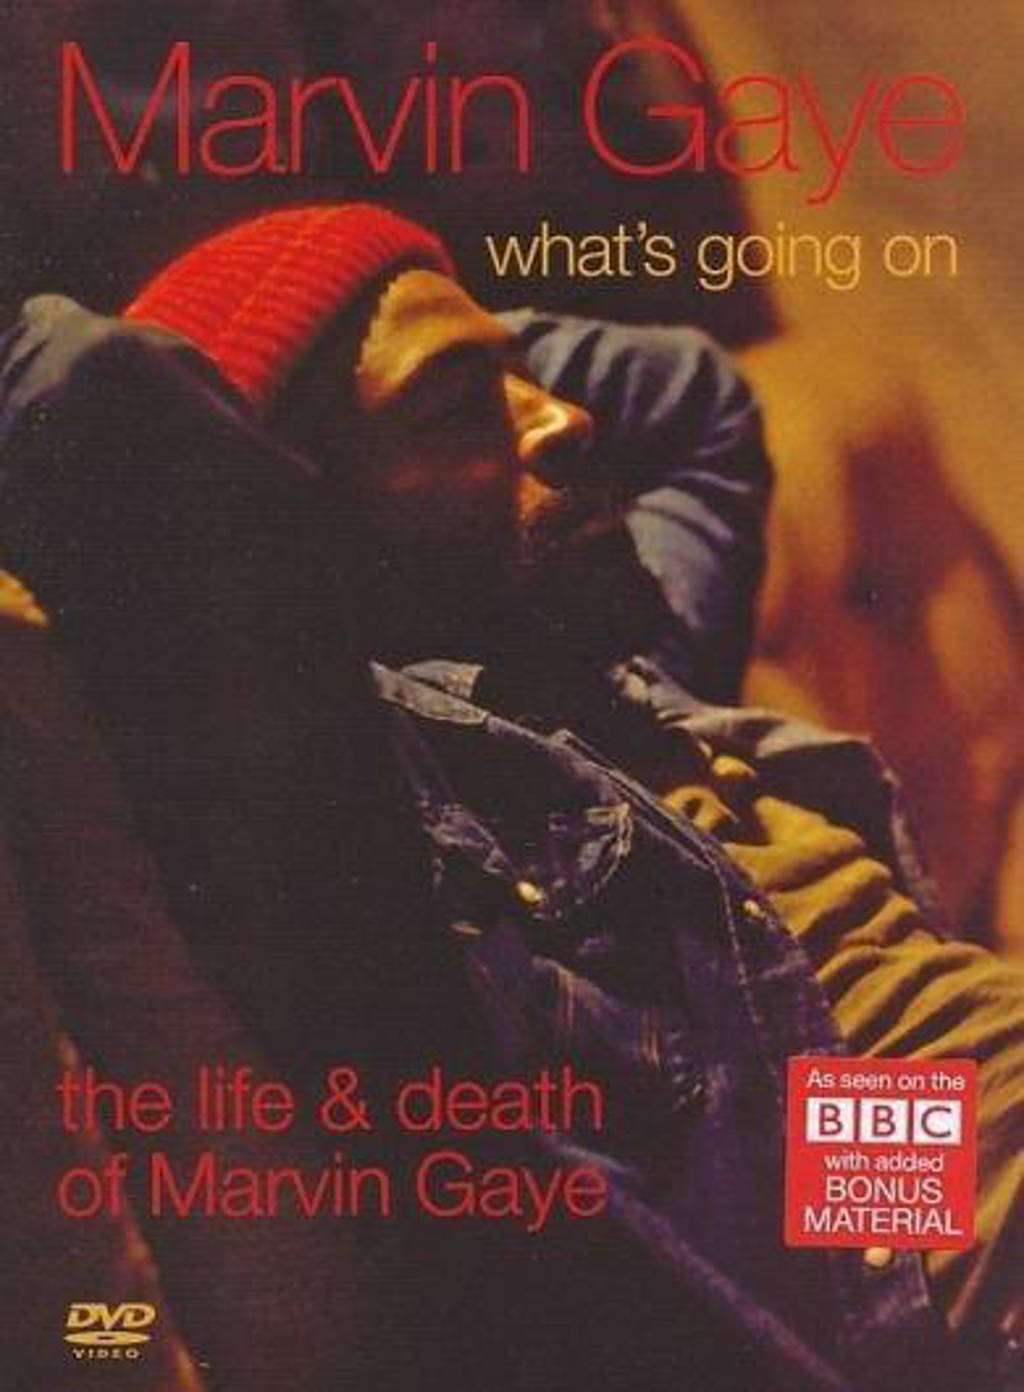 Marvin Gaye - What's Going On - The Life & Death (DVD)